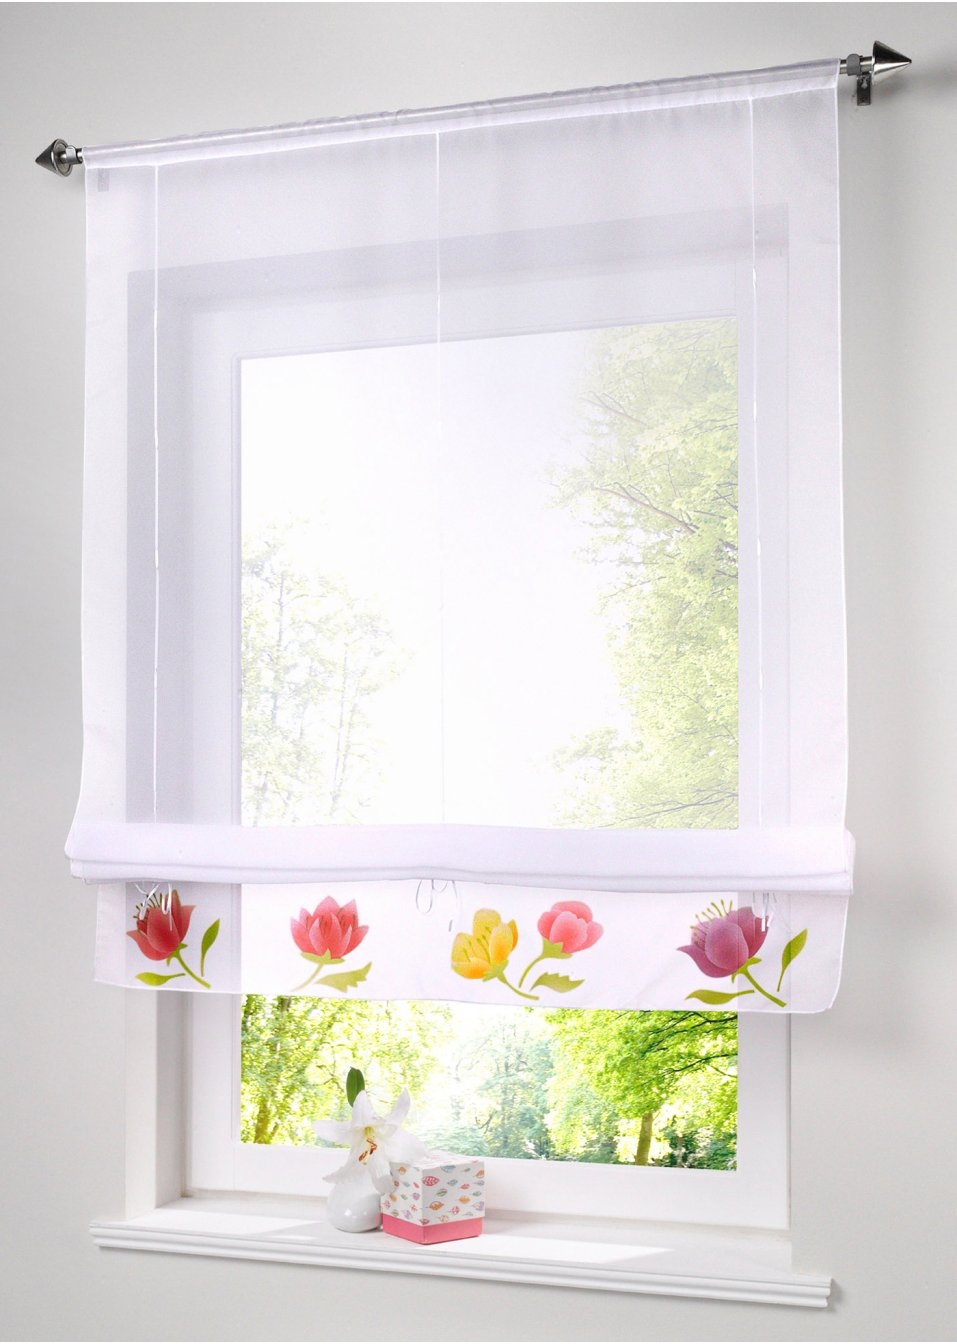 Online Get Cheap Handmade Blinds Aliexpress Alibaba Group With Regard To Handmade Roman Blinds (Image 12 of 15)